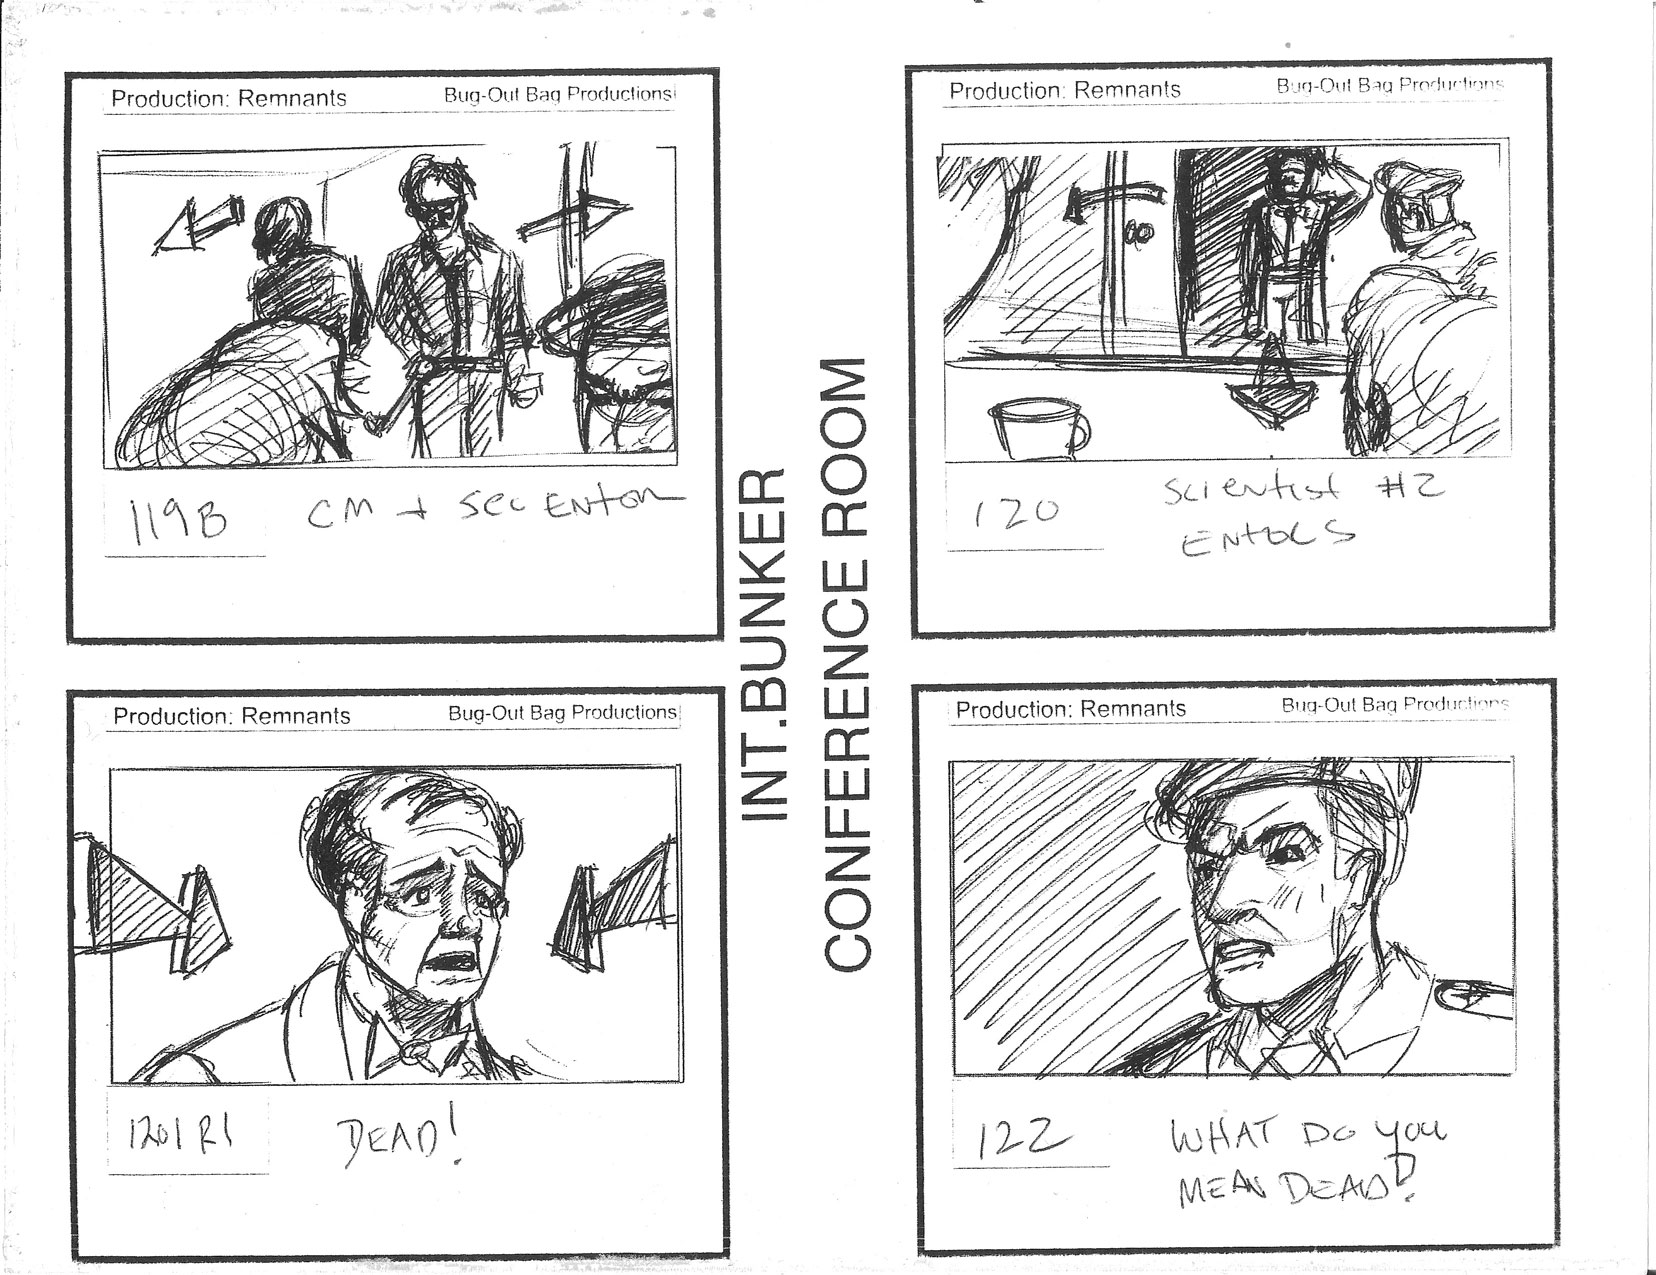 Remnants_storyboards_052.jpg